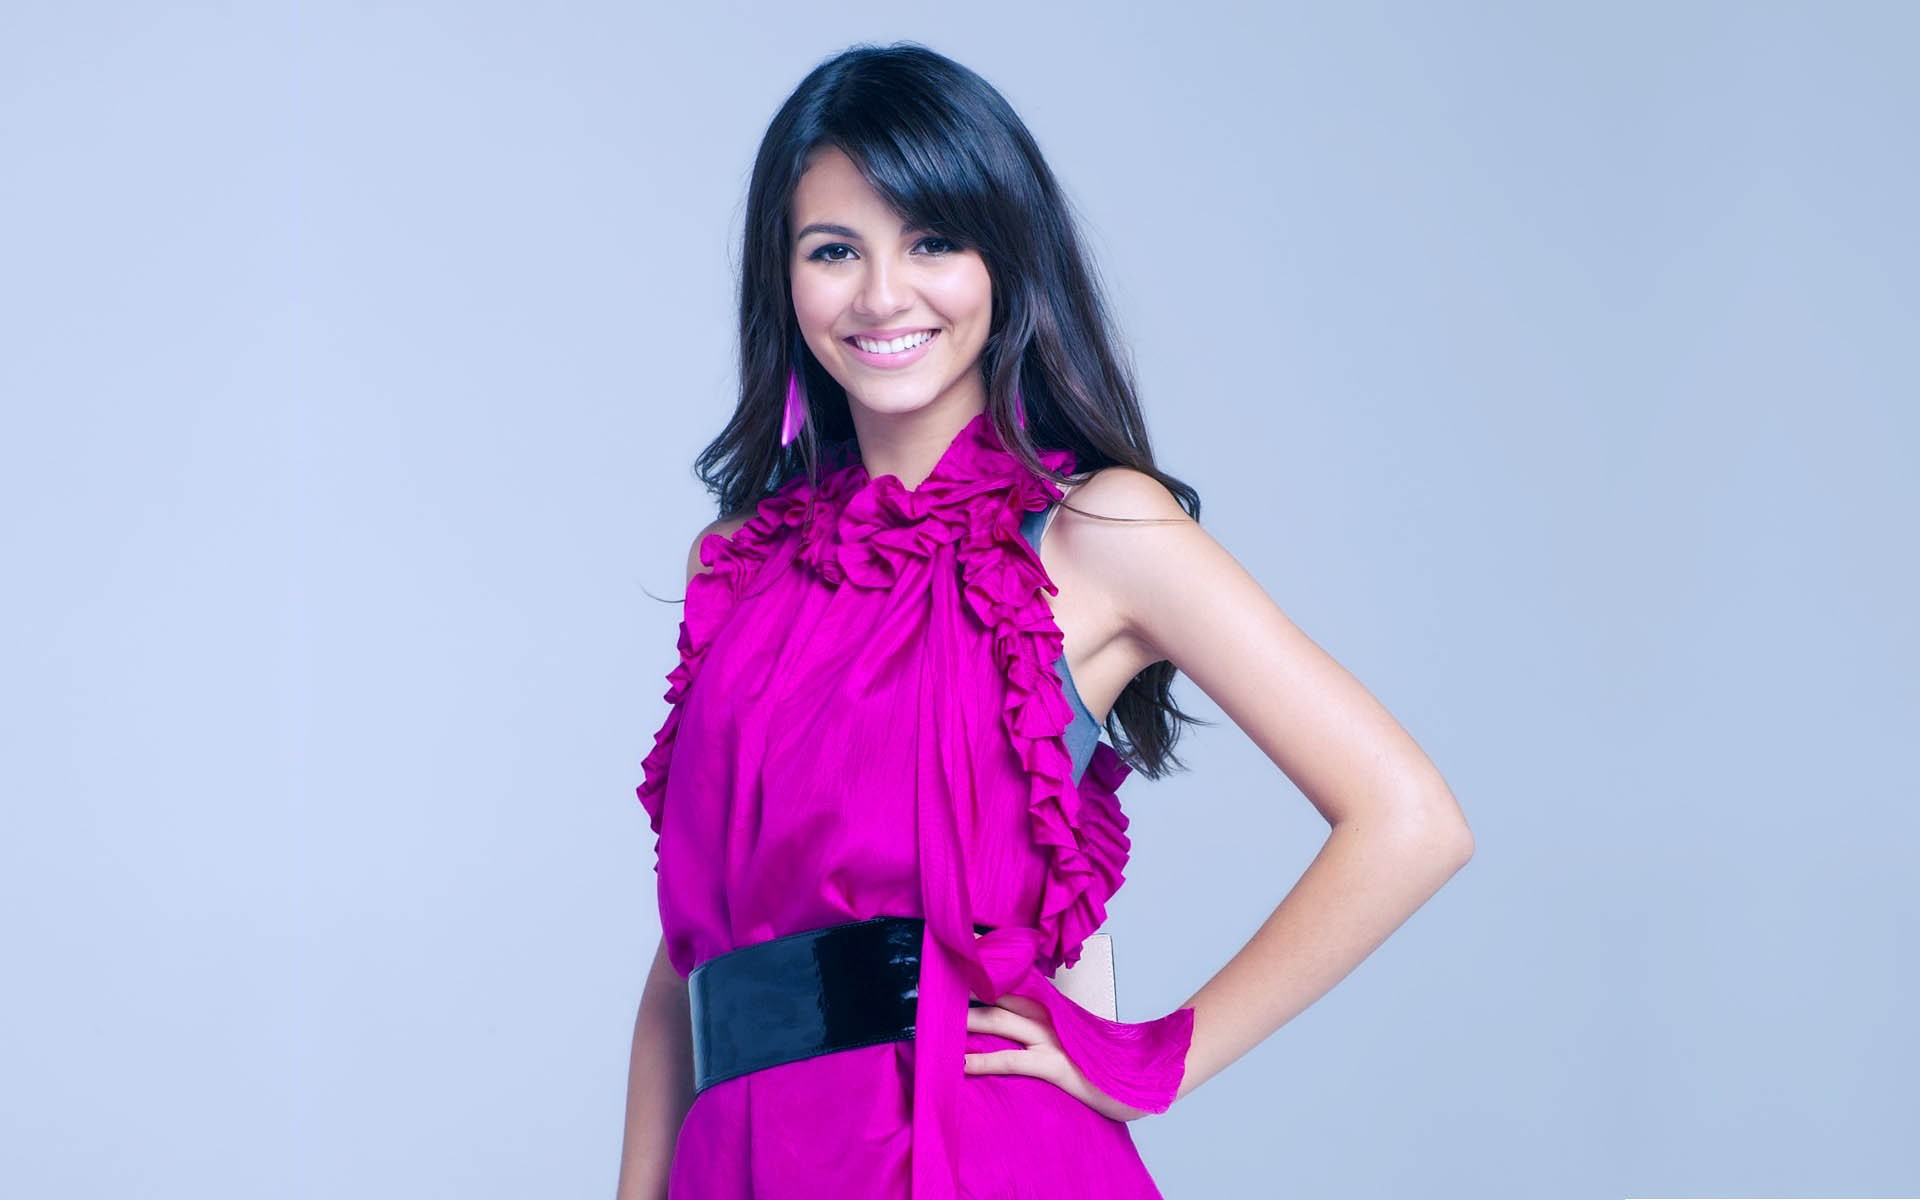 1920x1200 - Victoria Justice Wallpapers 26